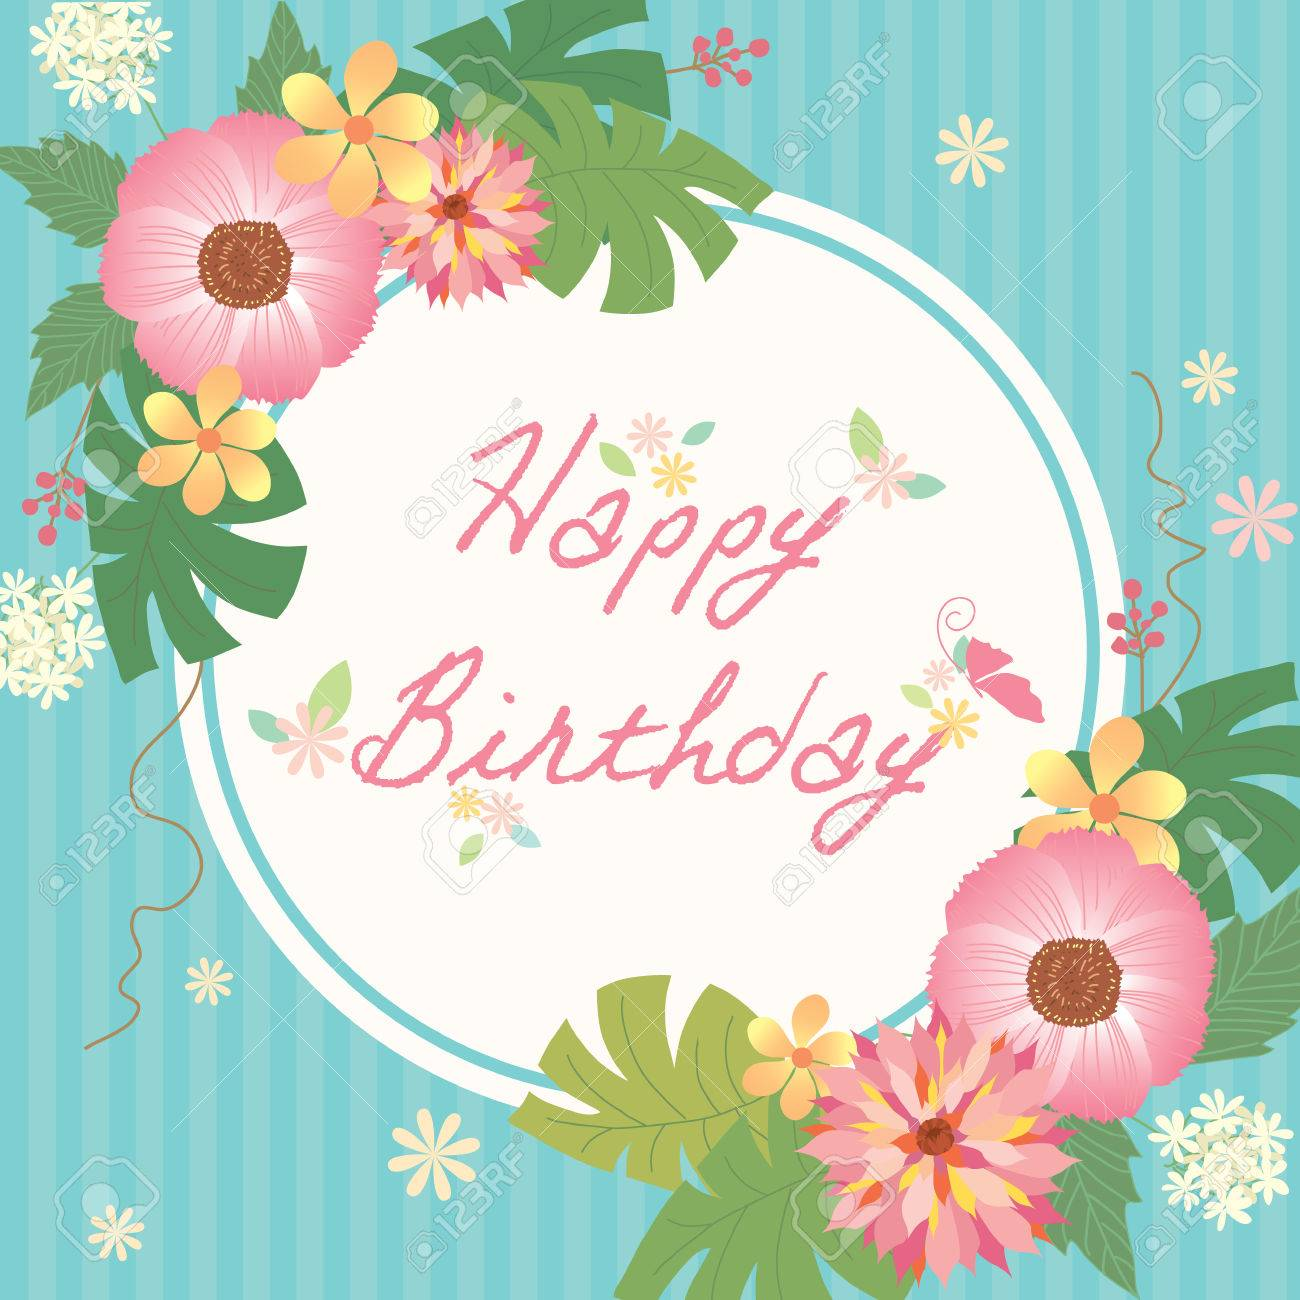 Various Of Flowers Decoration With Border Frame For Happy Birthday Card On Aqua Blue Stripe